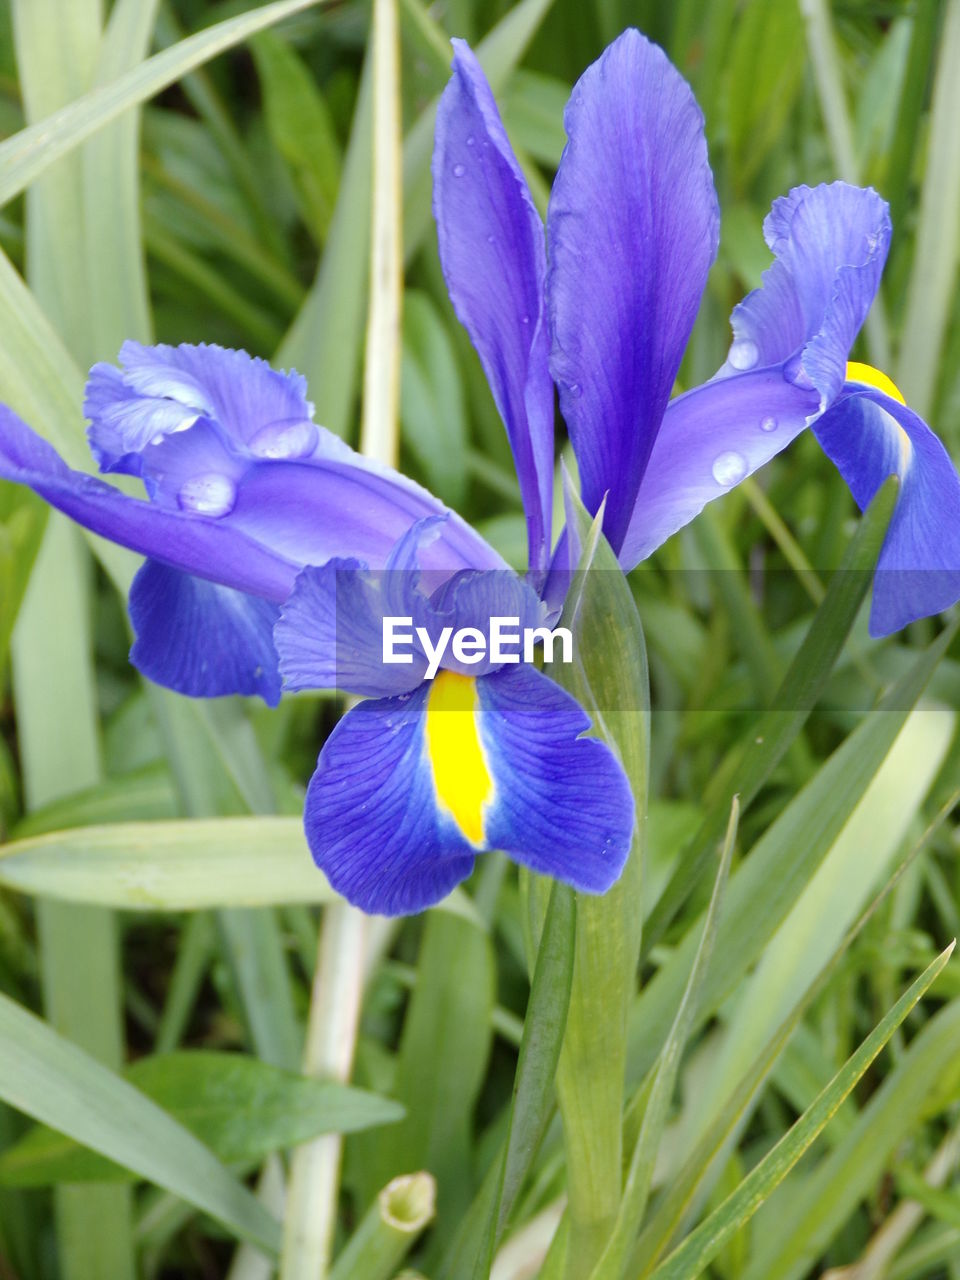 flowering plant, flower, plant, fragility, vulnerability, freshness, growth, beauty in nature, petal, purple, close-up, inflorescence, flower head, nature, day, no people, iris, field, blue, iris - plant, outdoors, springtime, crocus